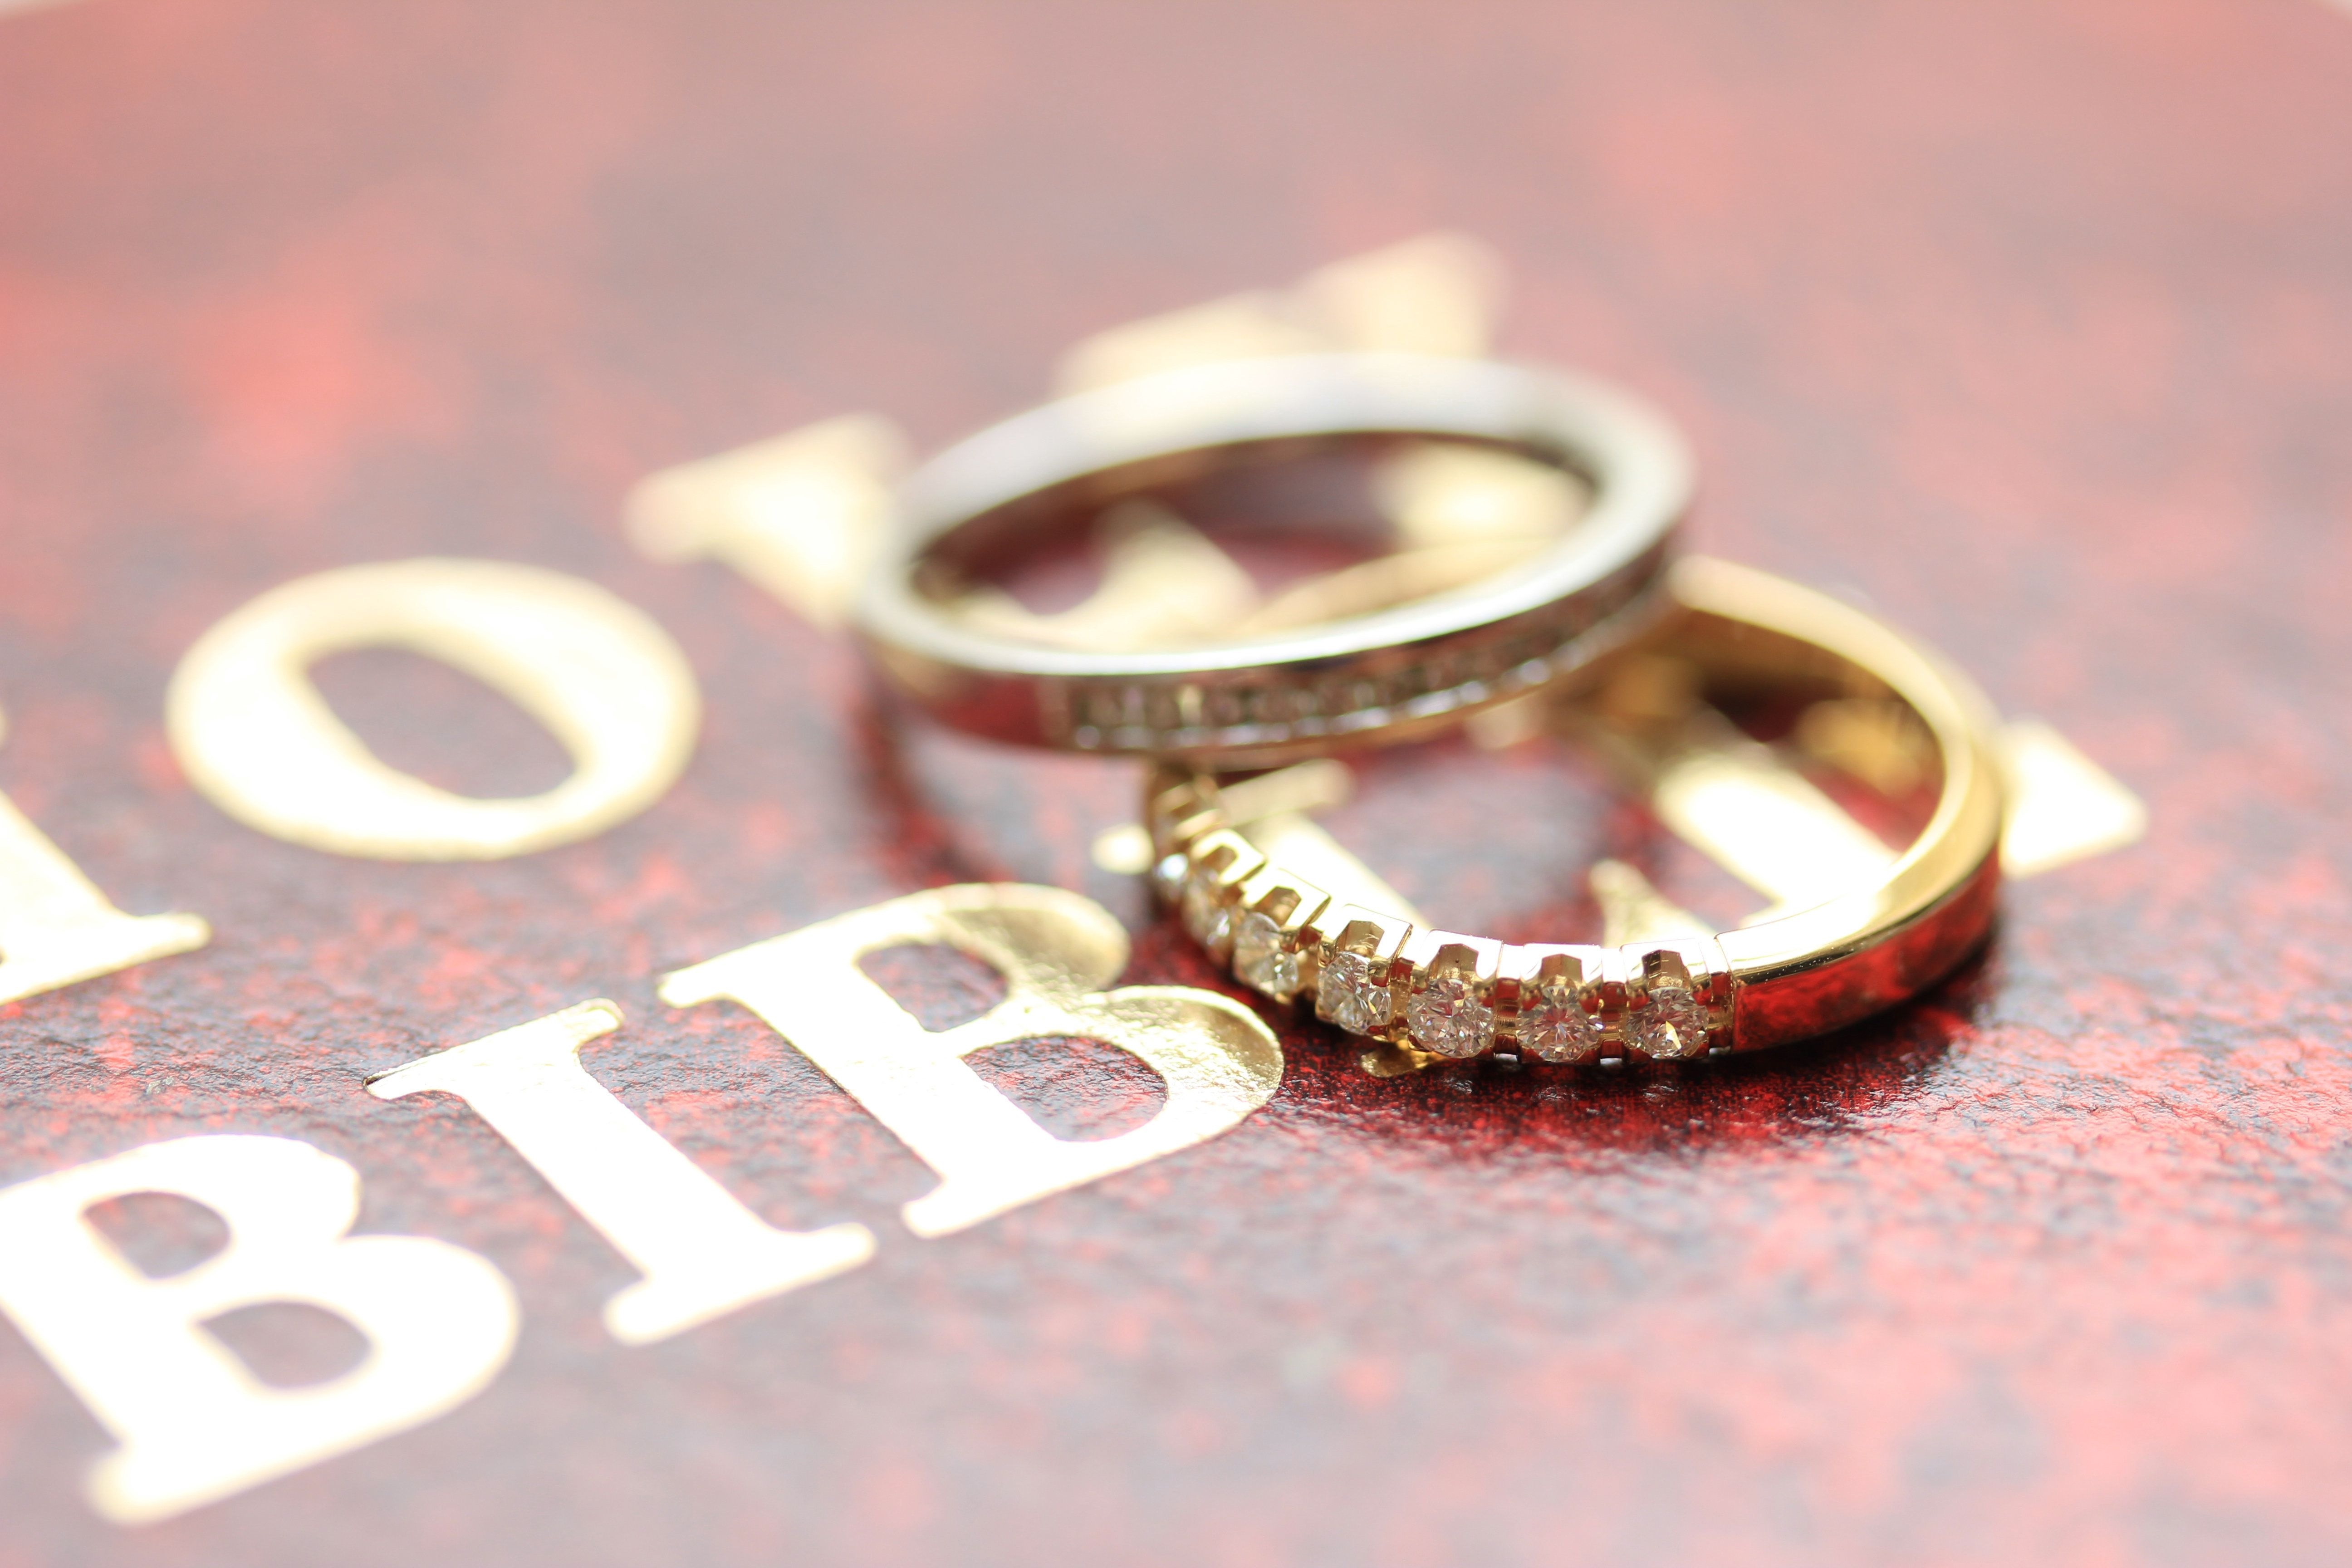 Young White Evangelicals Are Increasingly Showing Support For Marriage